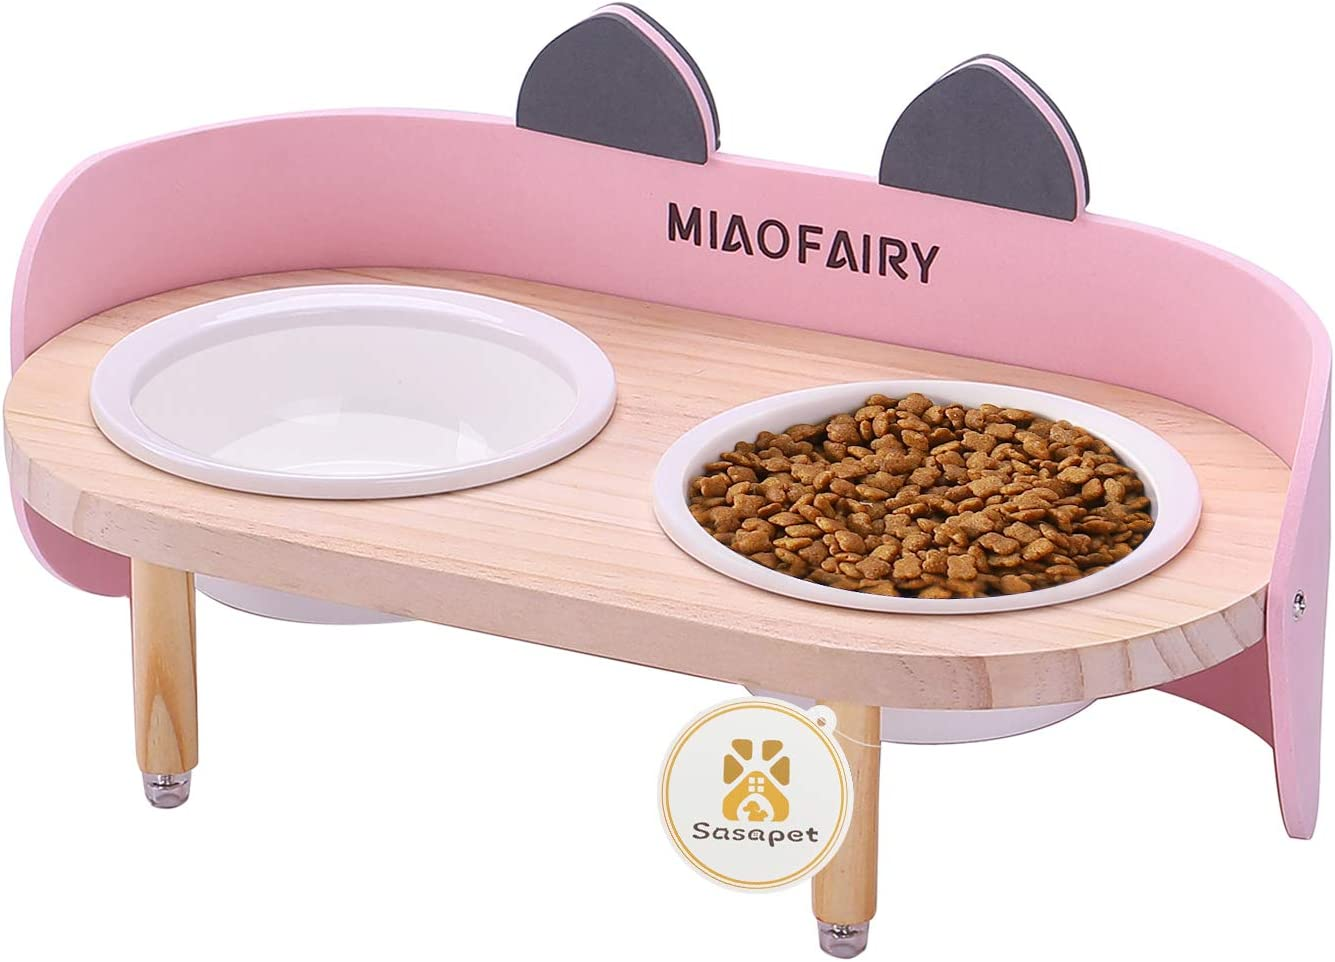 Sasapet Elevated Cat Bowls with Stand Feeder, Raised Wooden Stand with 2 Ceramics Bowl, Cat Food and Water Bowls Dishes, Cute Kitty Bowl for Cats and Small Dogs